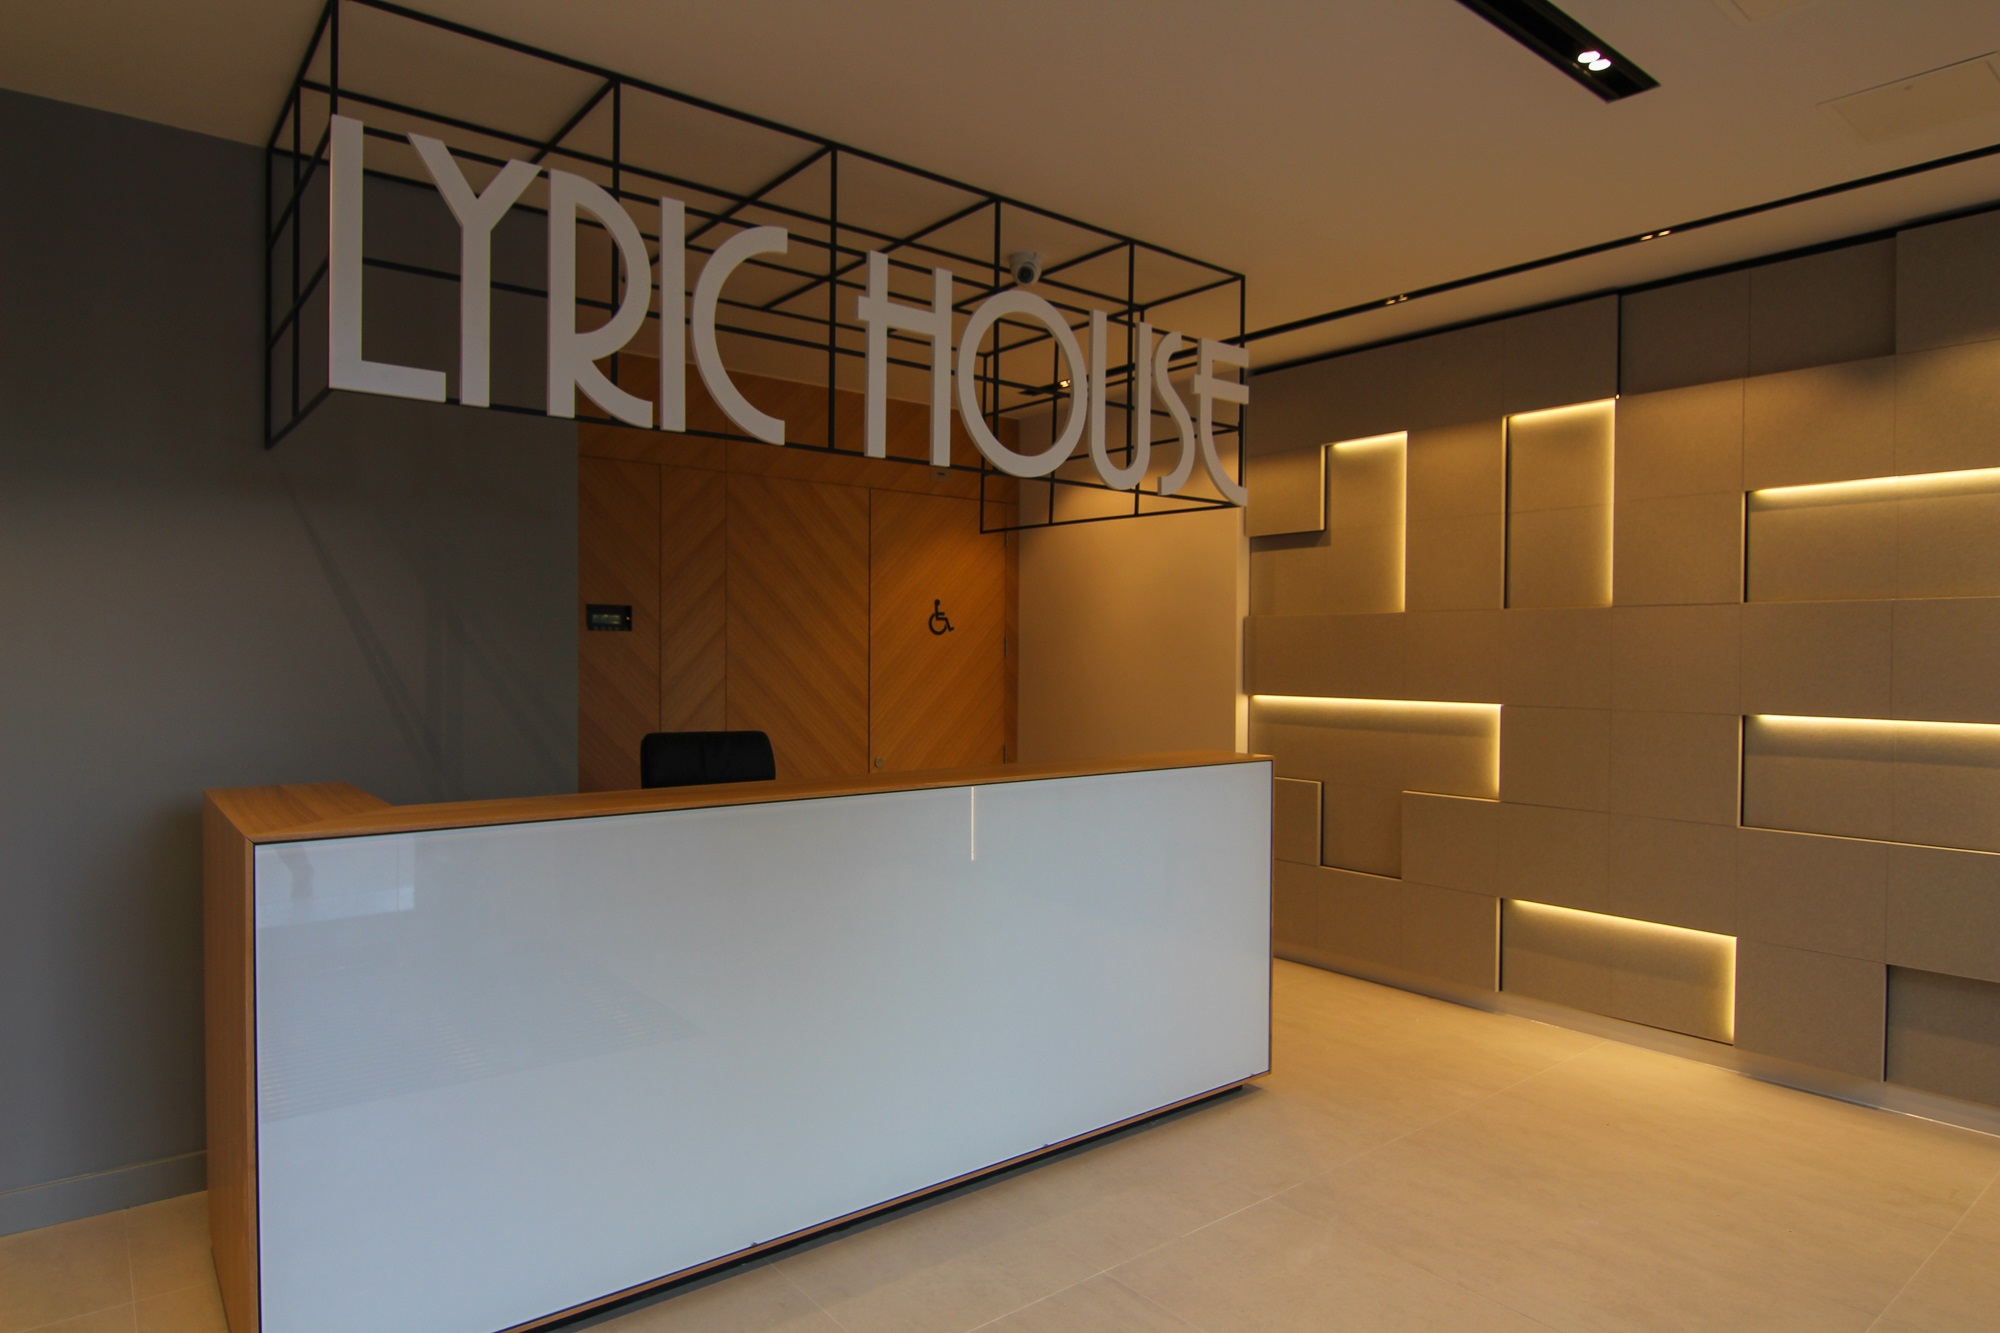 lyric house refurb reception area